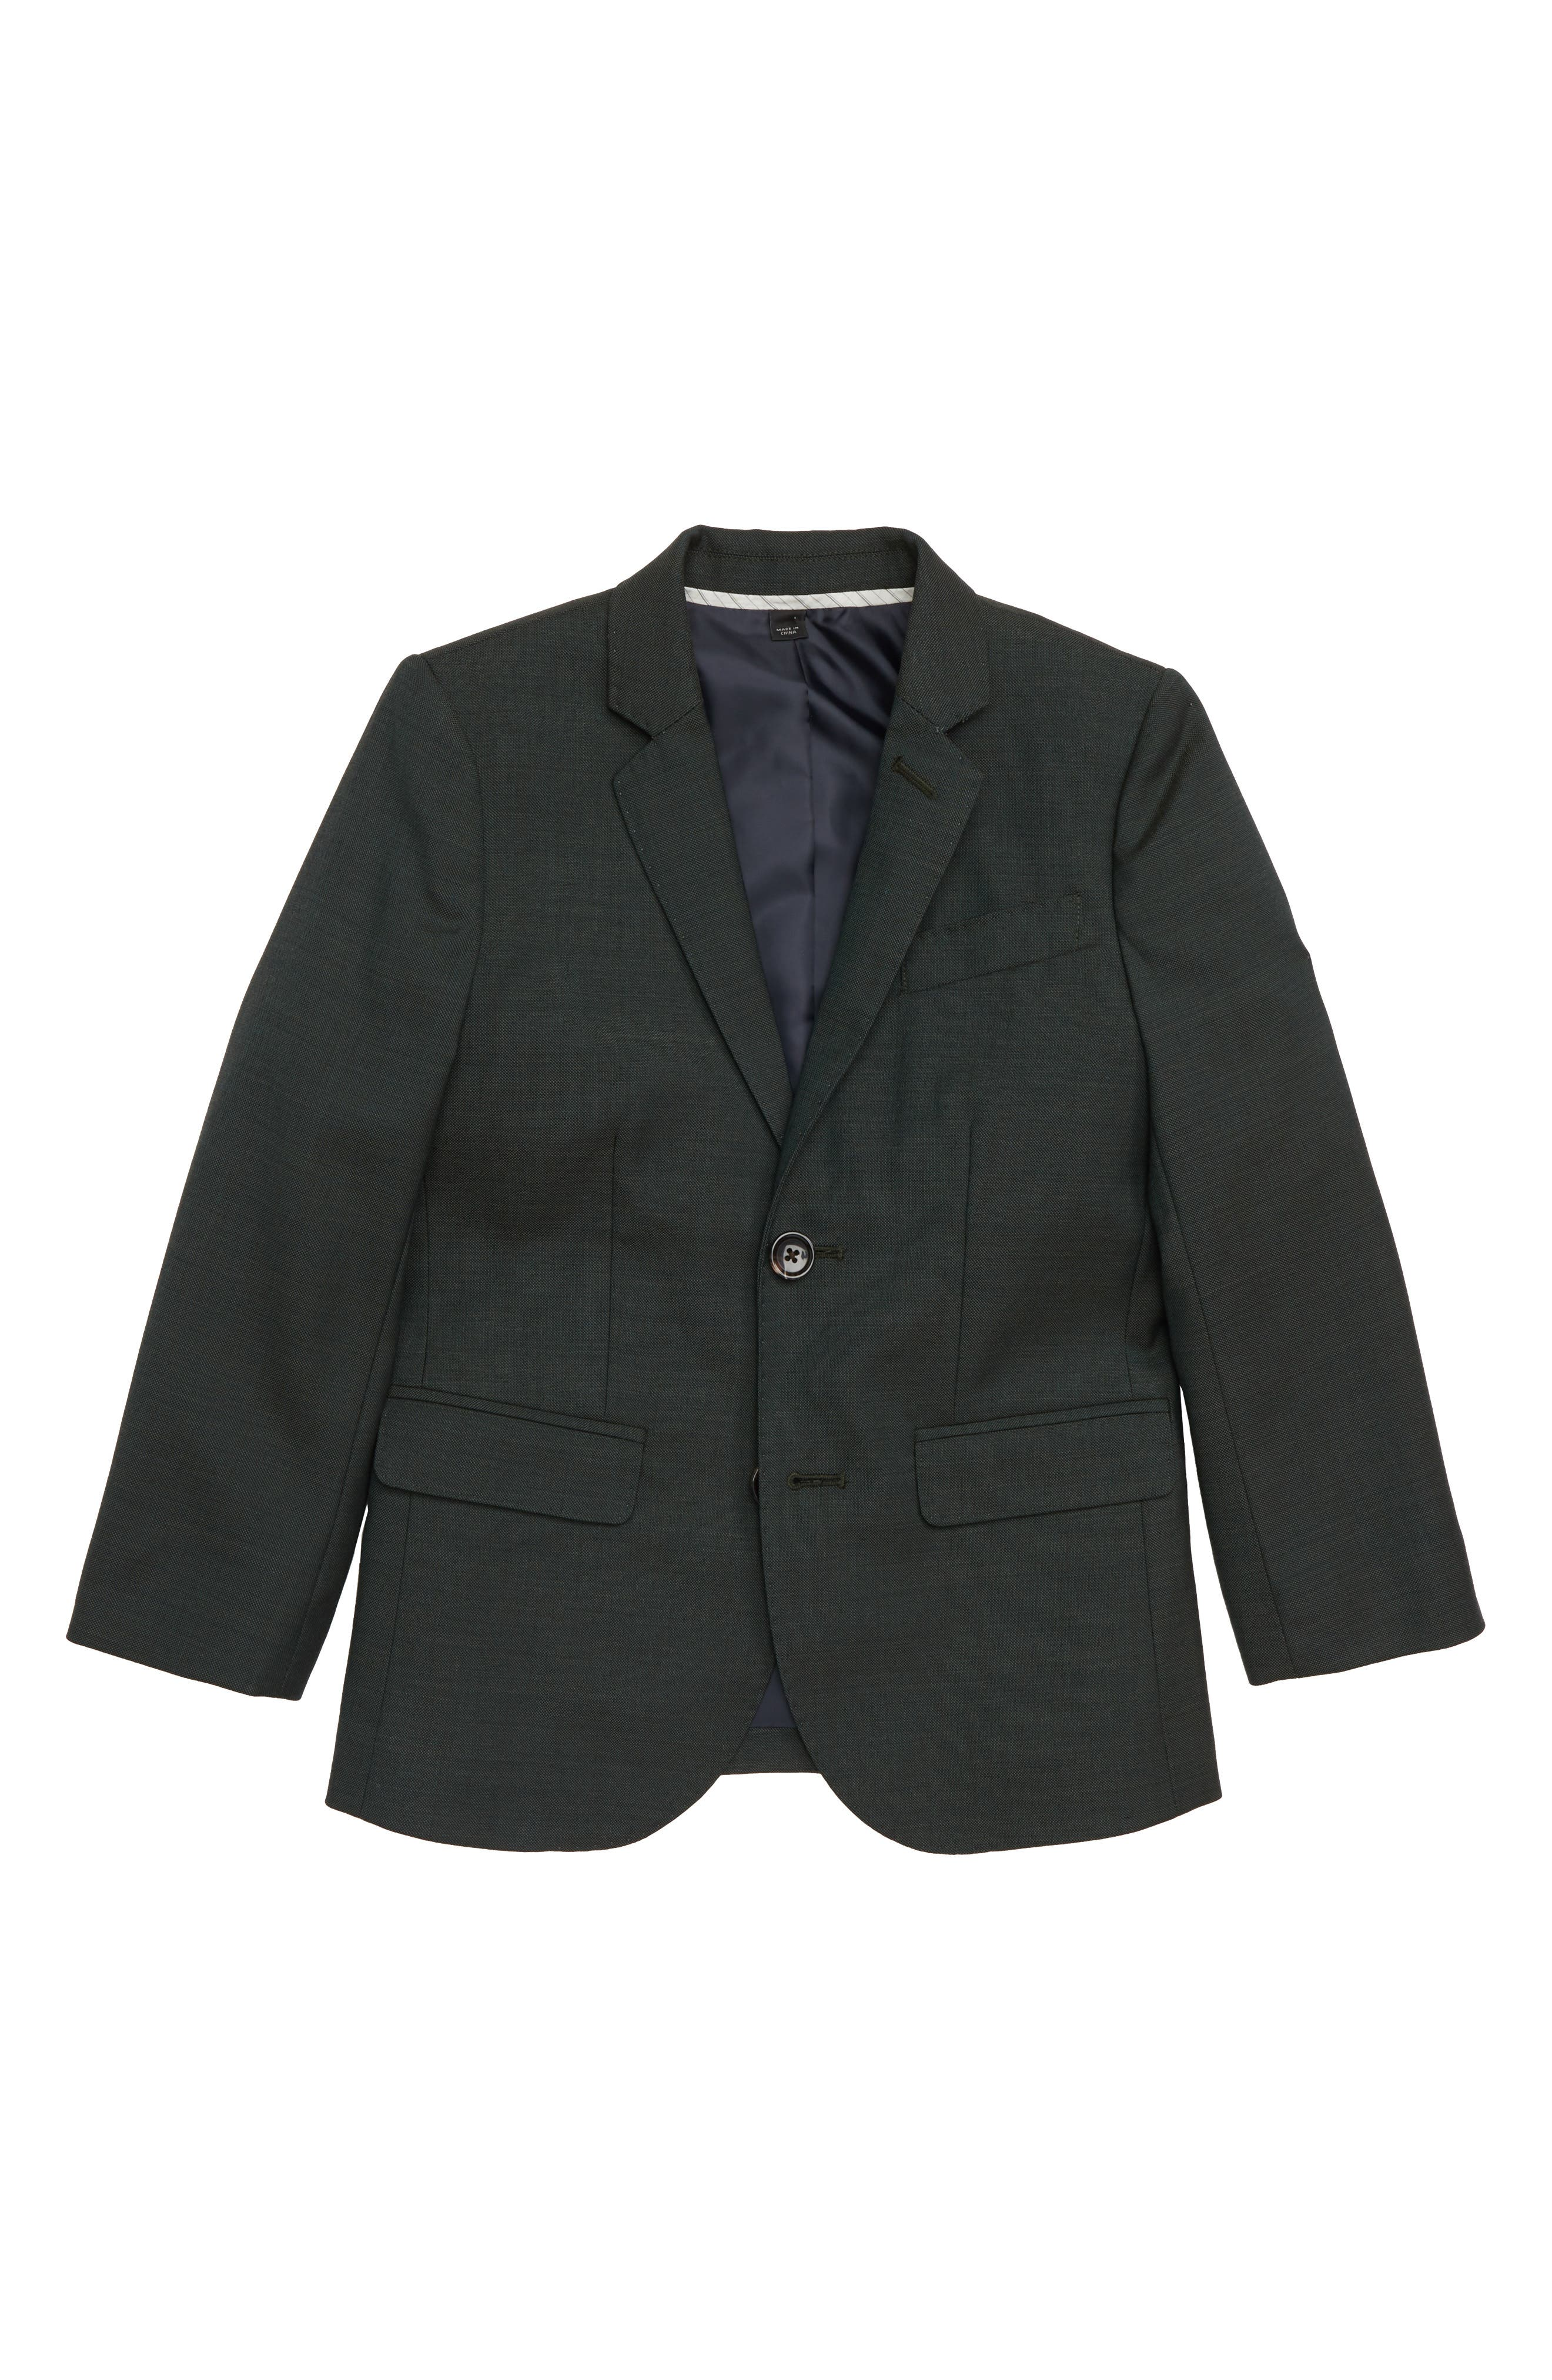 Ludlow Stretch Wool Suit Jacket,                             Main thumbnail 1, color,                             DARK GREEN